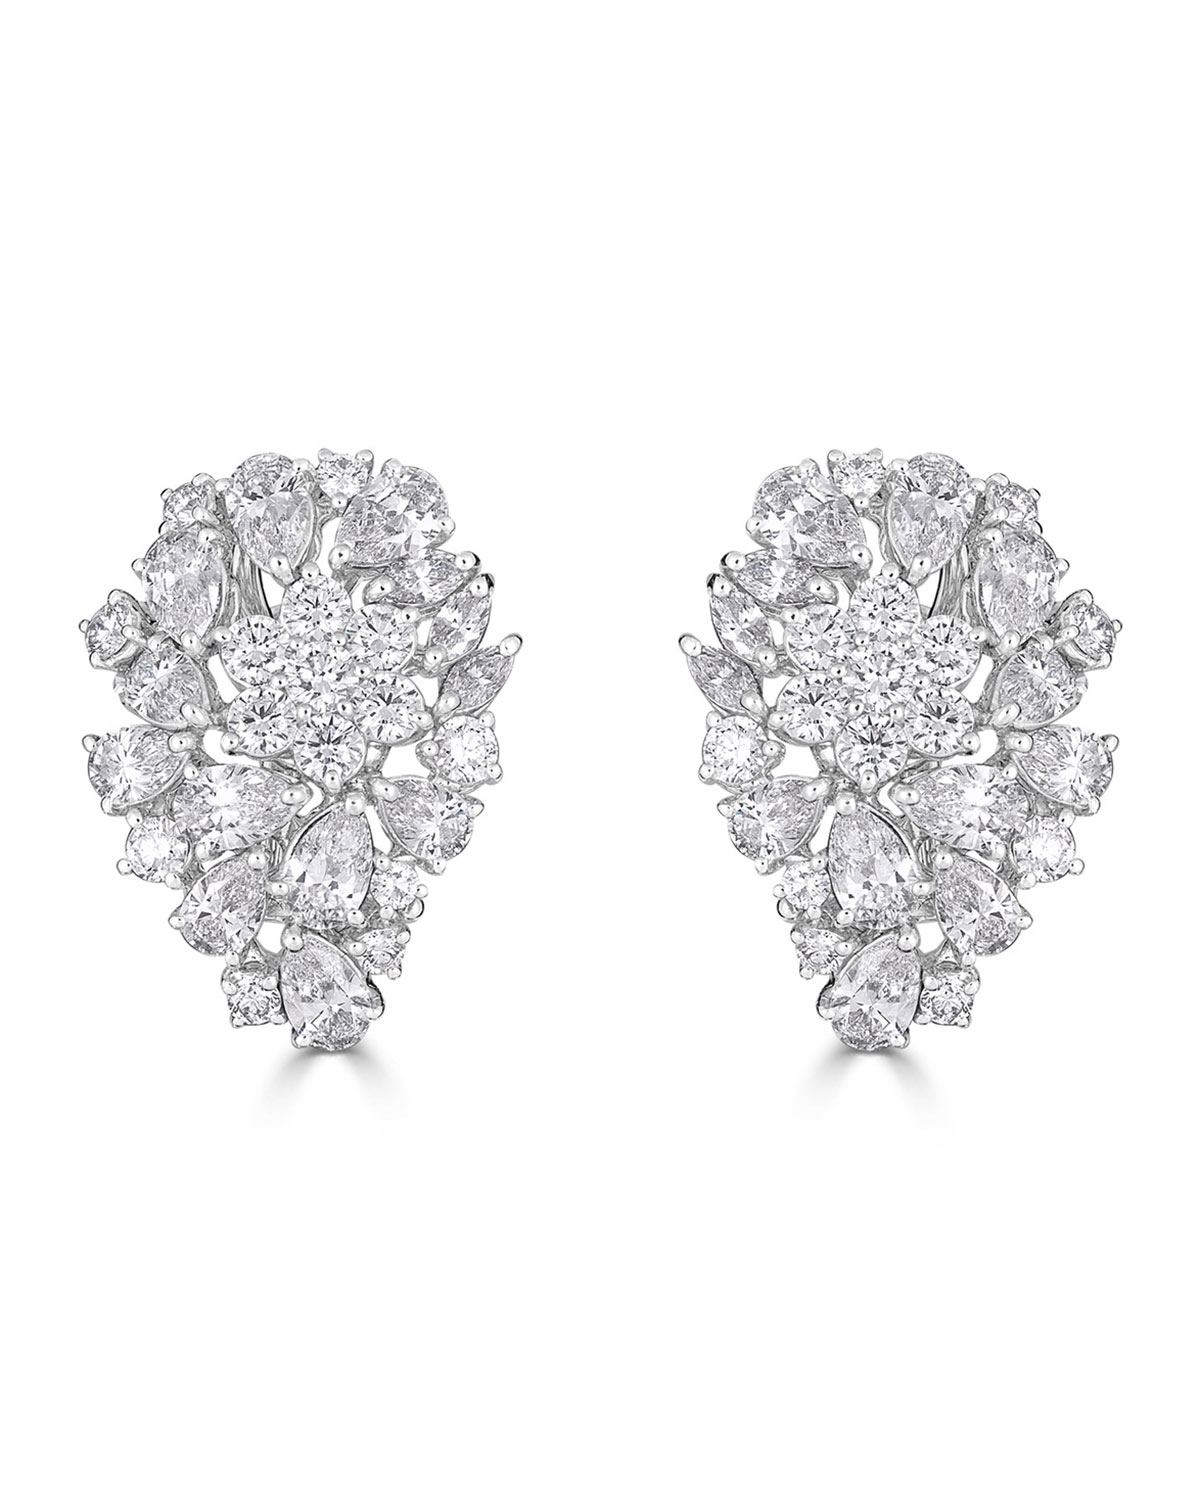 ZYDO Luminal 18K White Gold Diamond Flower Cluster Earrings